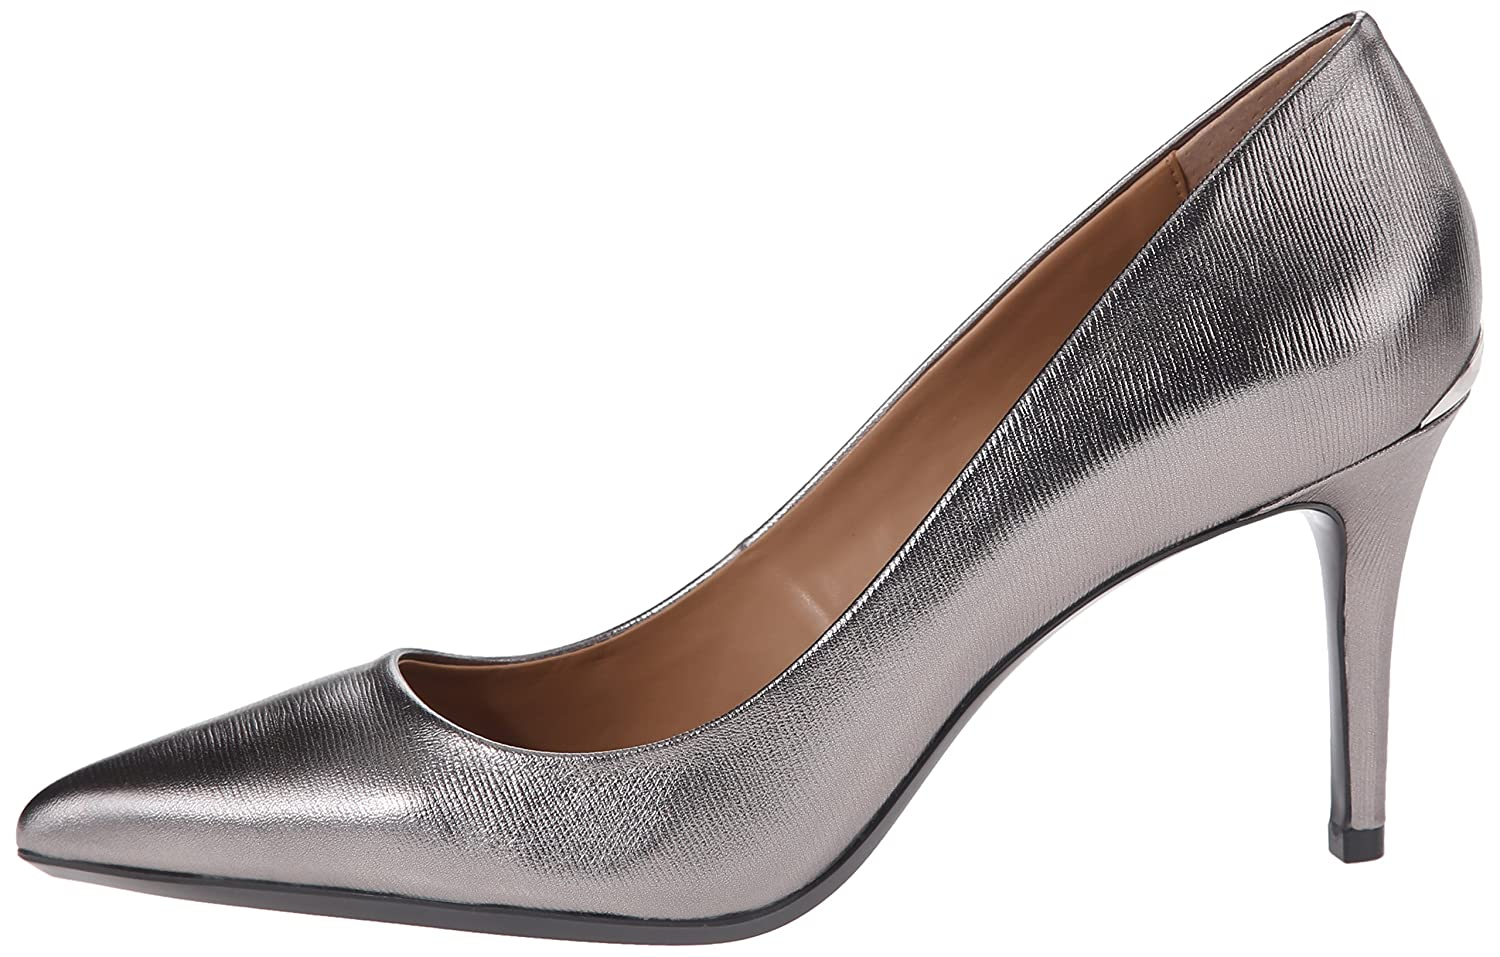 Calvin Klein Women's Gayle Pump B01335KC06 6.5 B(M) US|Anthracite Metallic Birch Leather